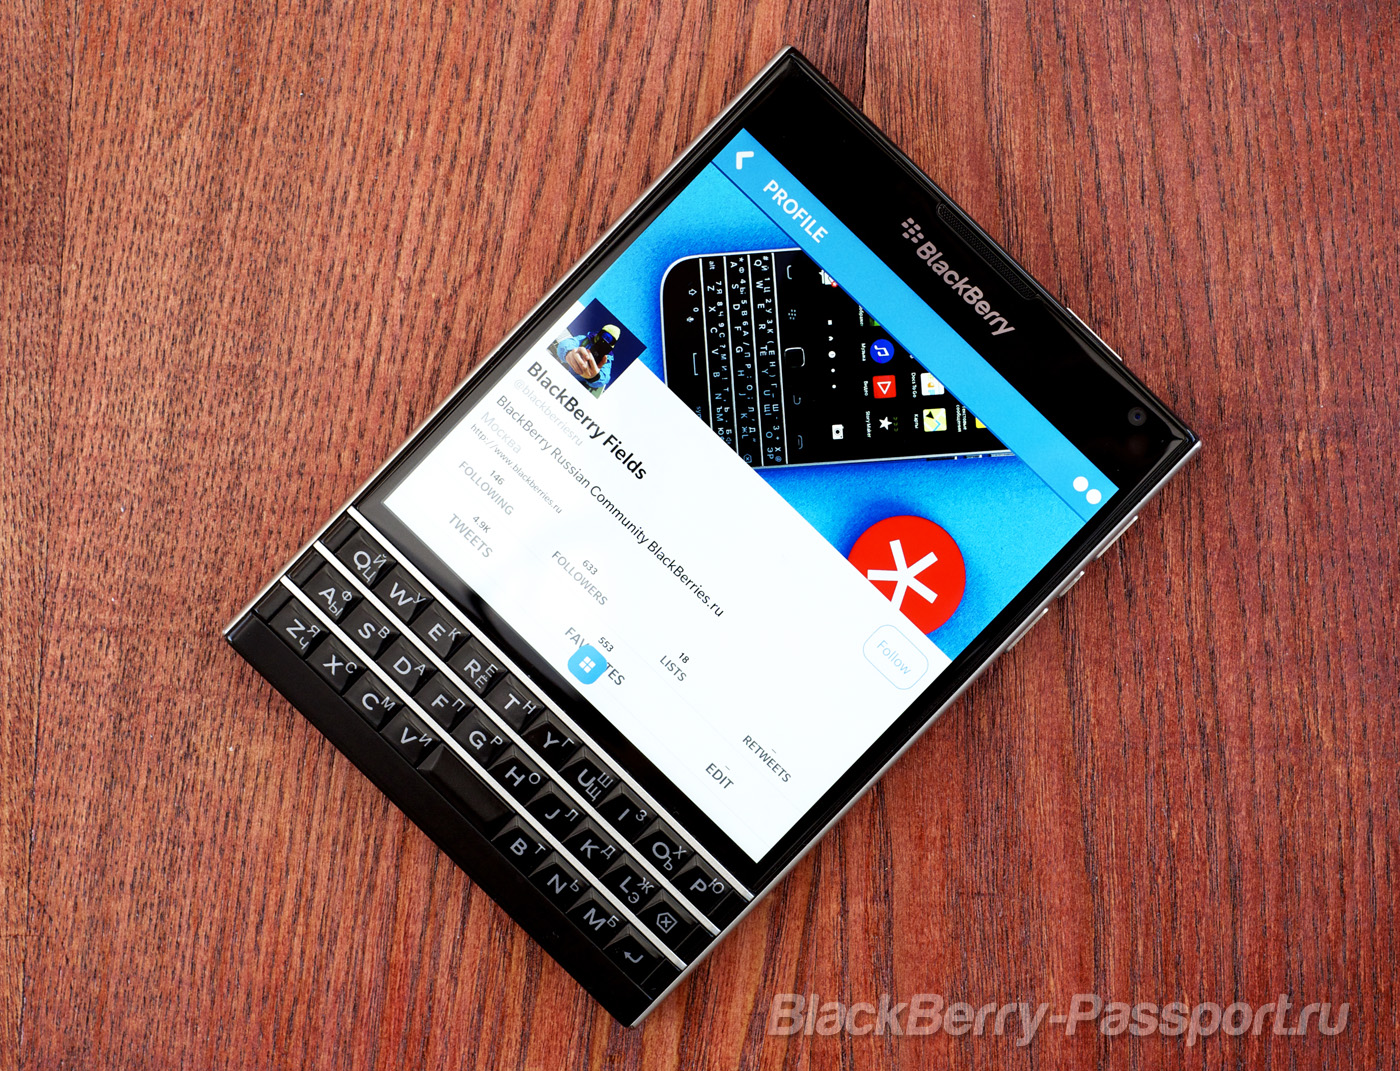 BlackBerry-Passport-Twittly-BP-1